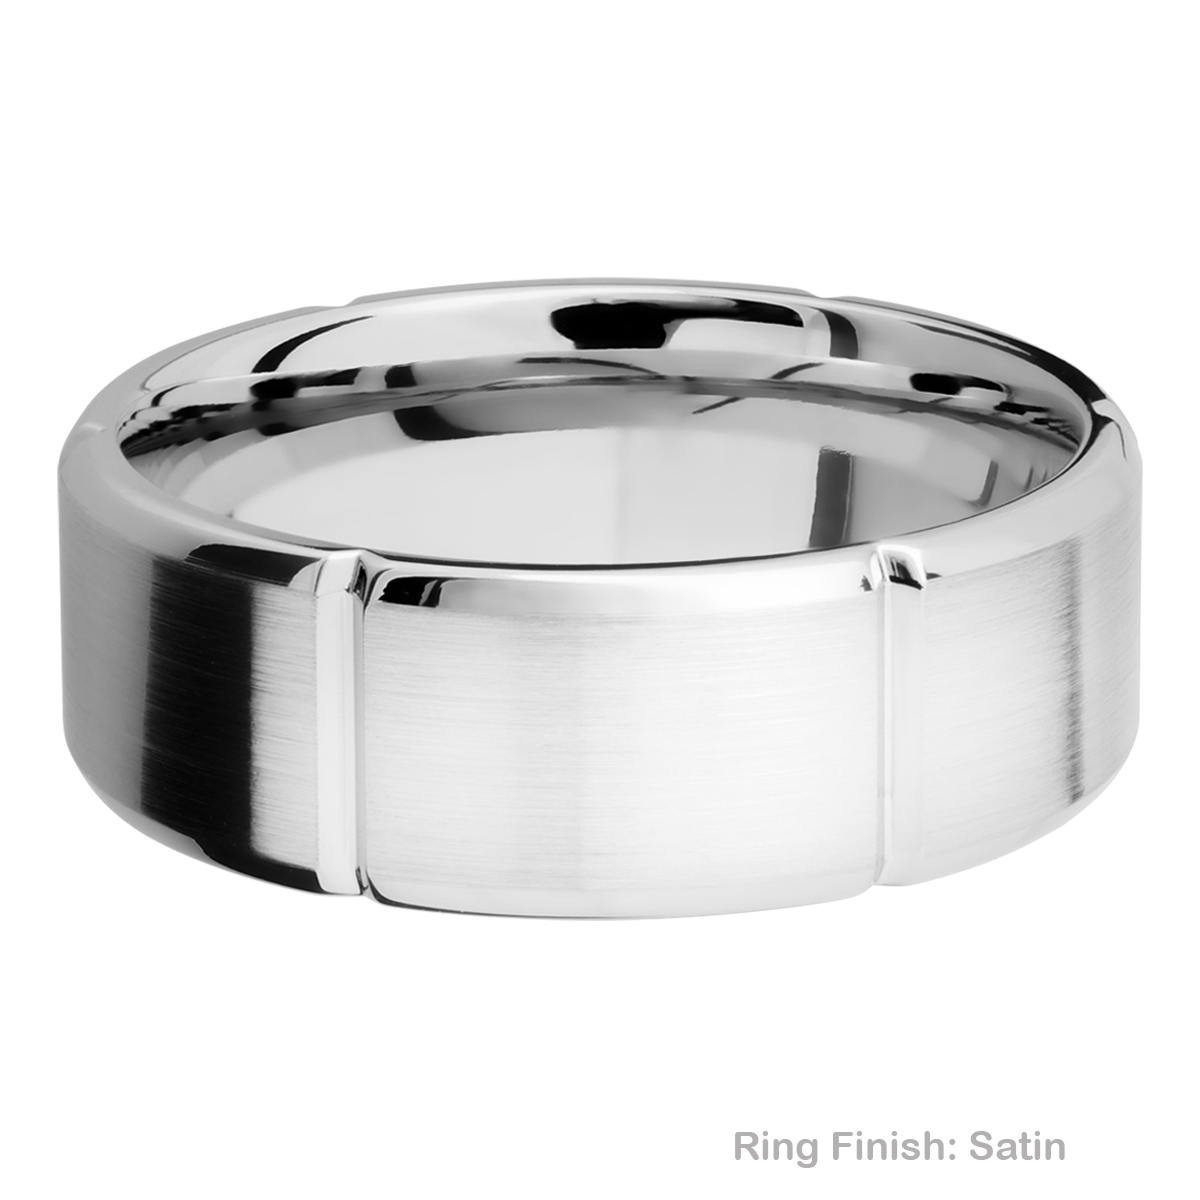 Lashbrook 8B6SEG Titanium Wedding Ring or Band Alternative View 3